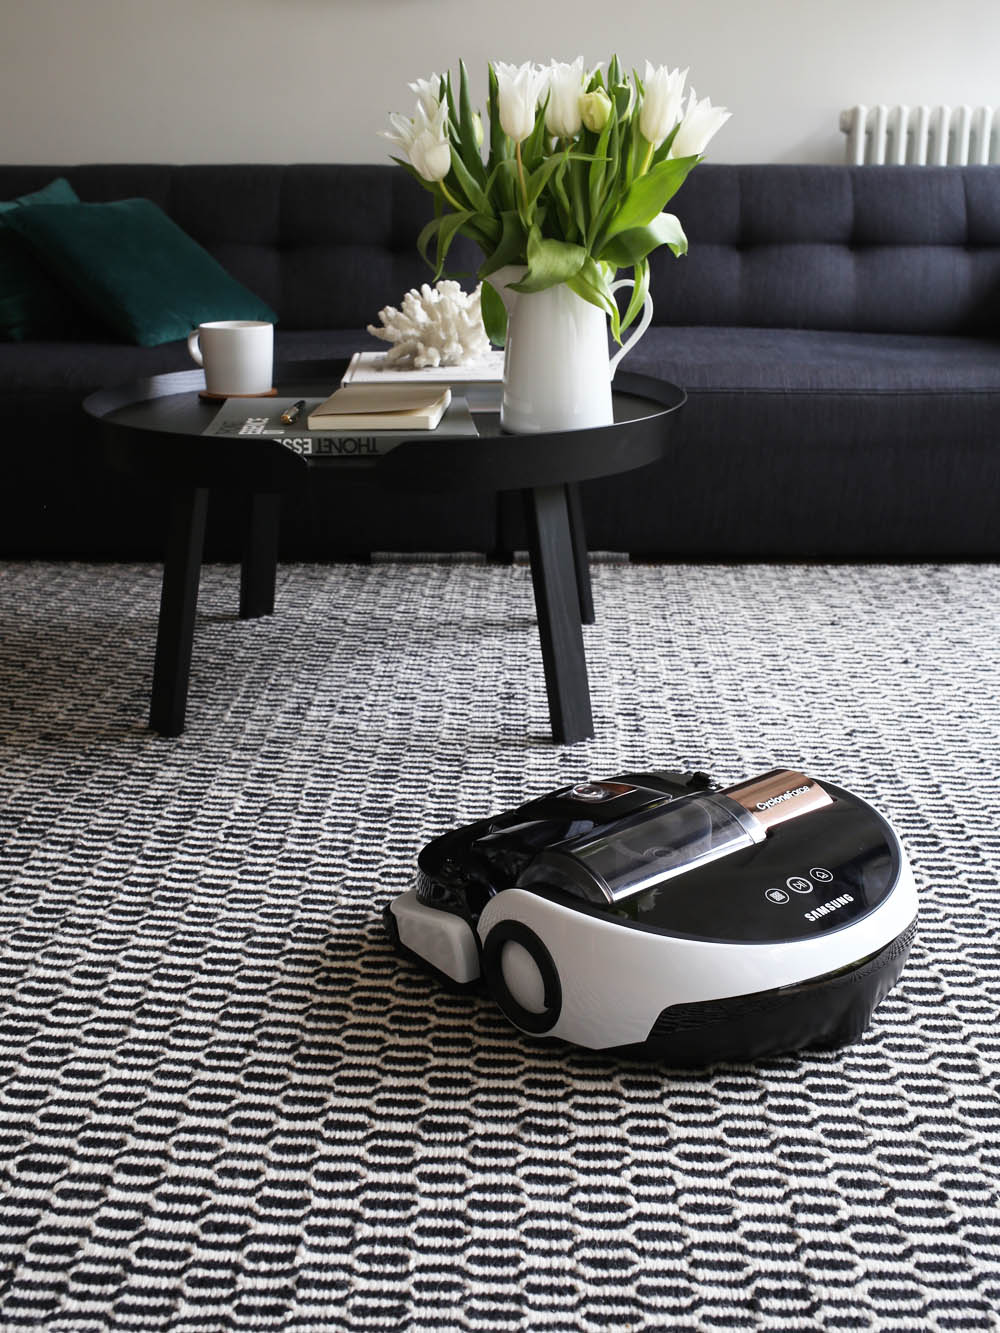 Samsung Powerbot VR9000 robot vacuum cleaner